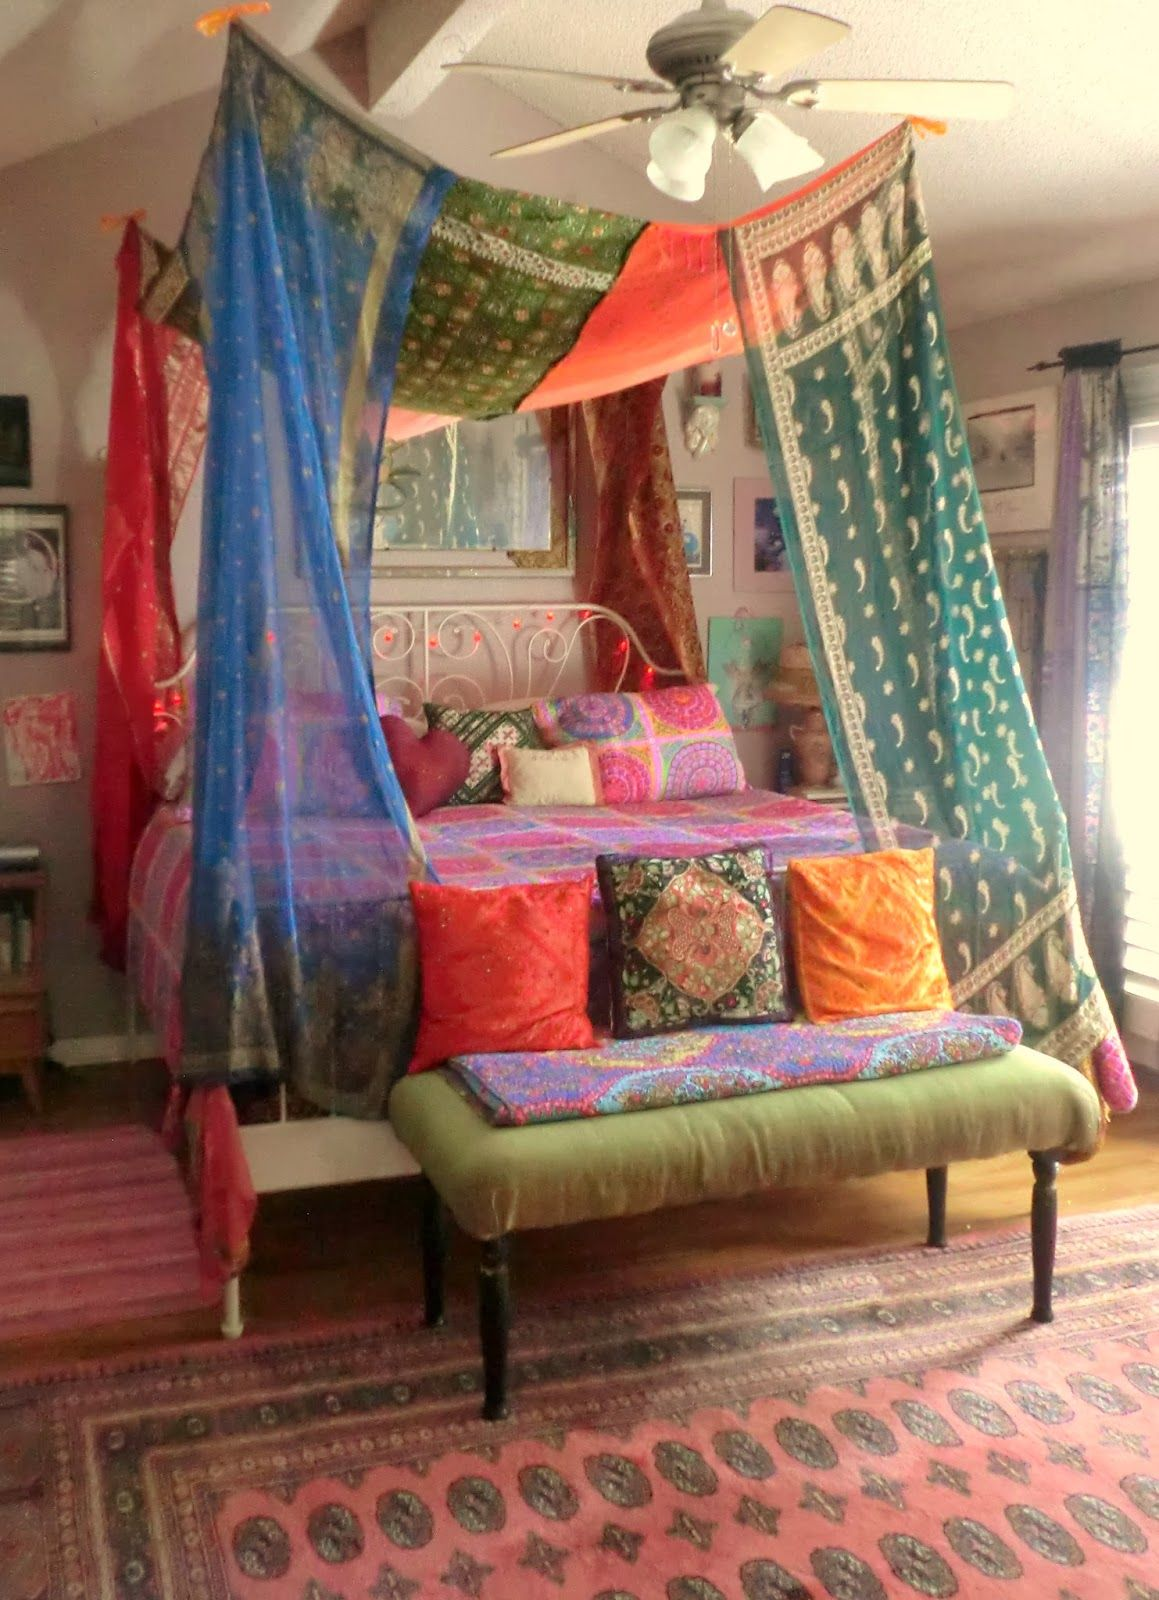 Modern canopy bed tumblr - Hippie Bohemian Bedroom Tumblr Design Inspiration 23452 Decorating Ideas